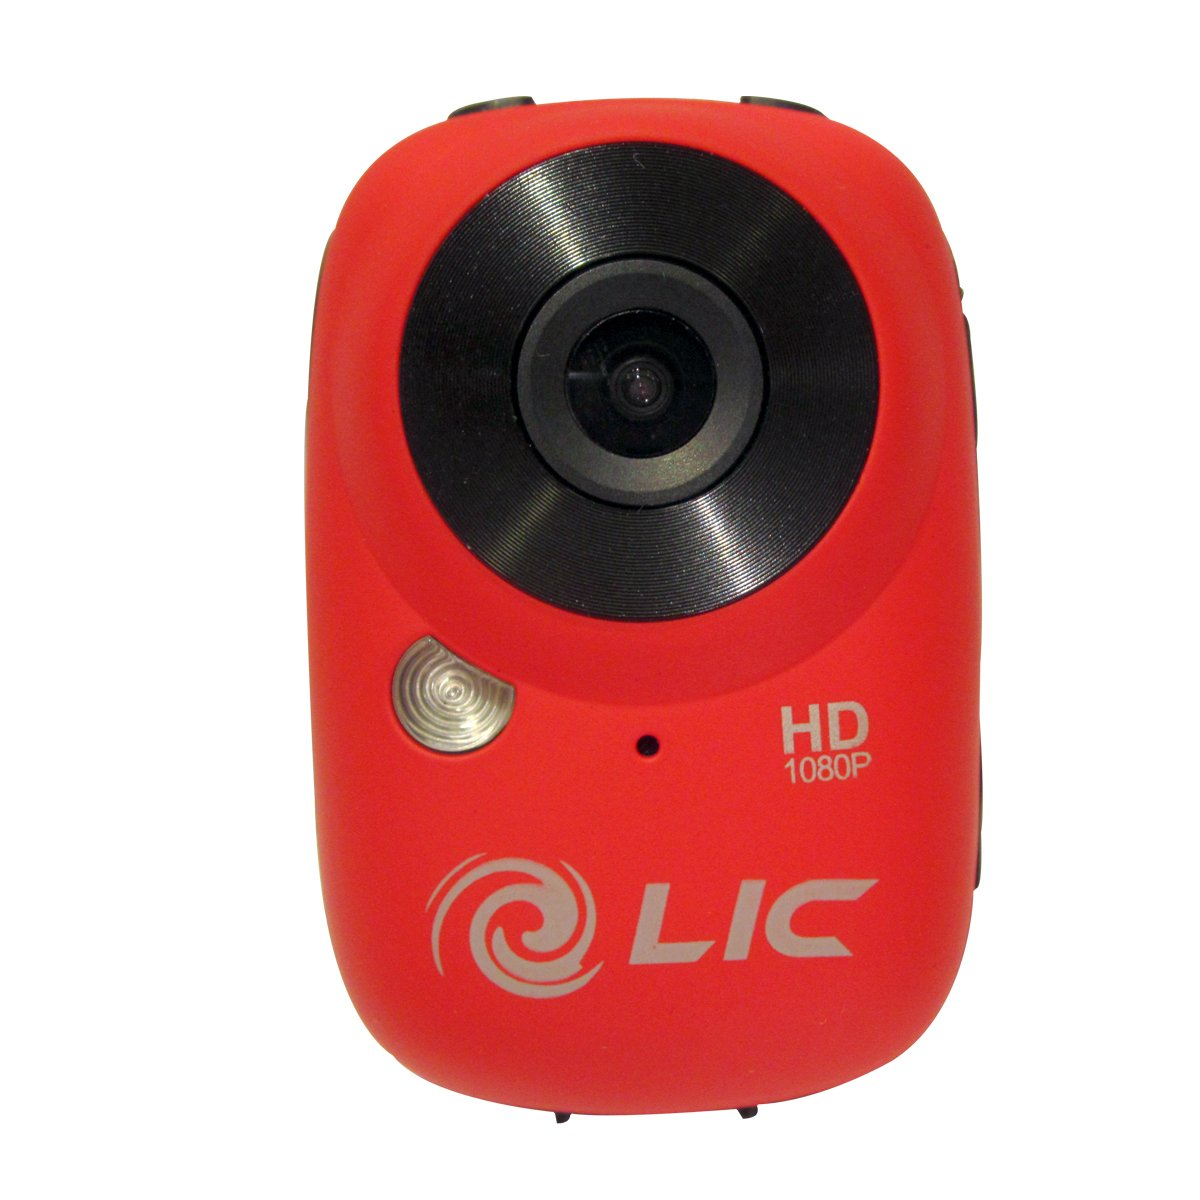 Liquid Image Ego Series 727R Mountable Sport Video Camera with WiFi (Red)